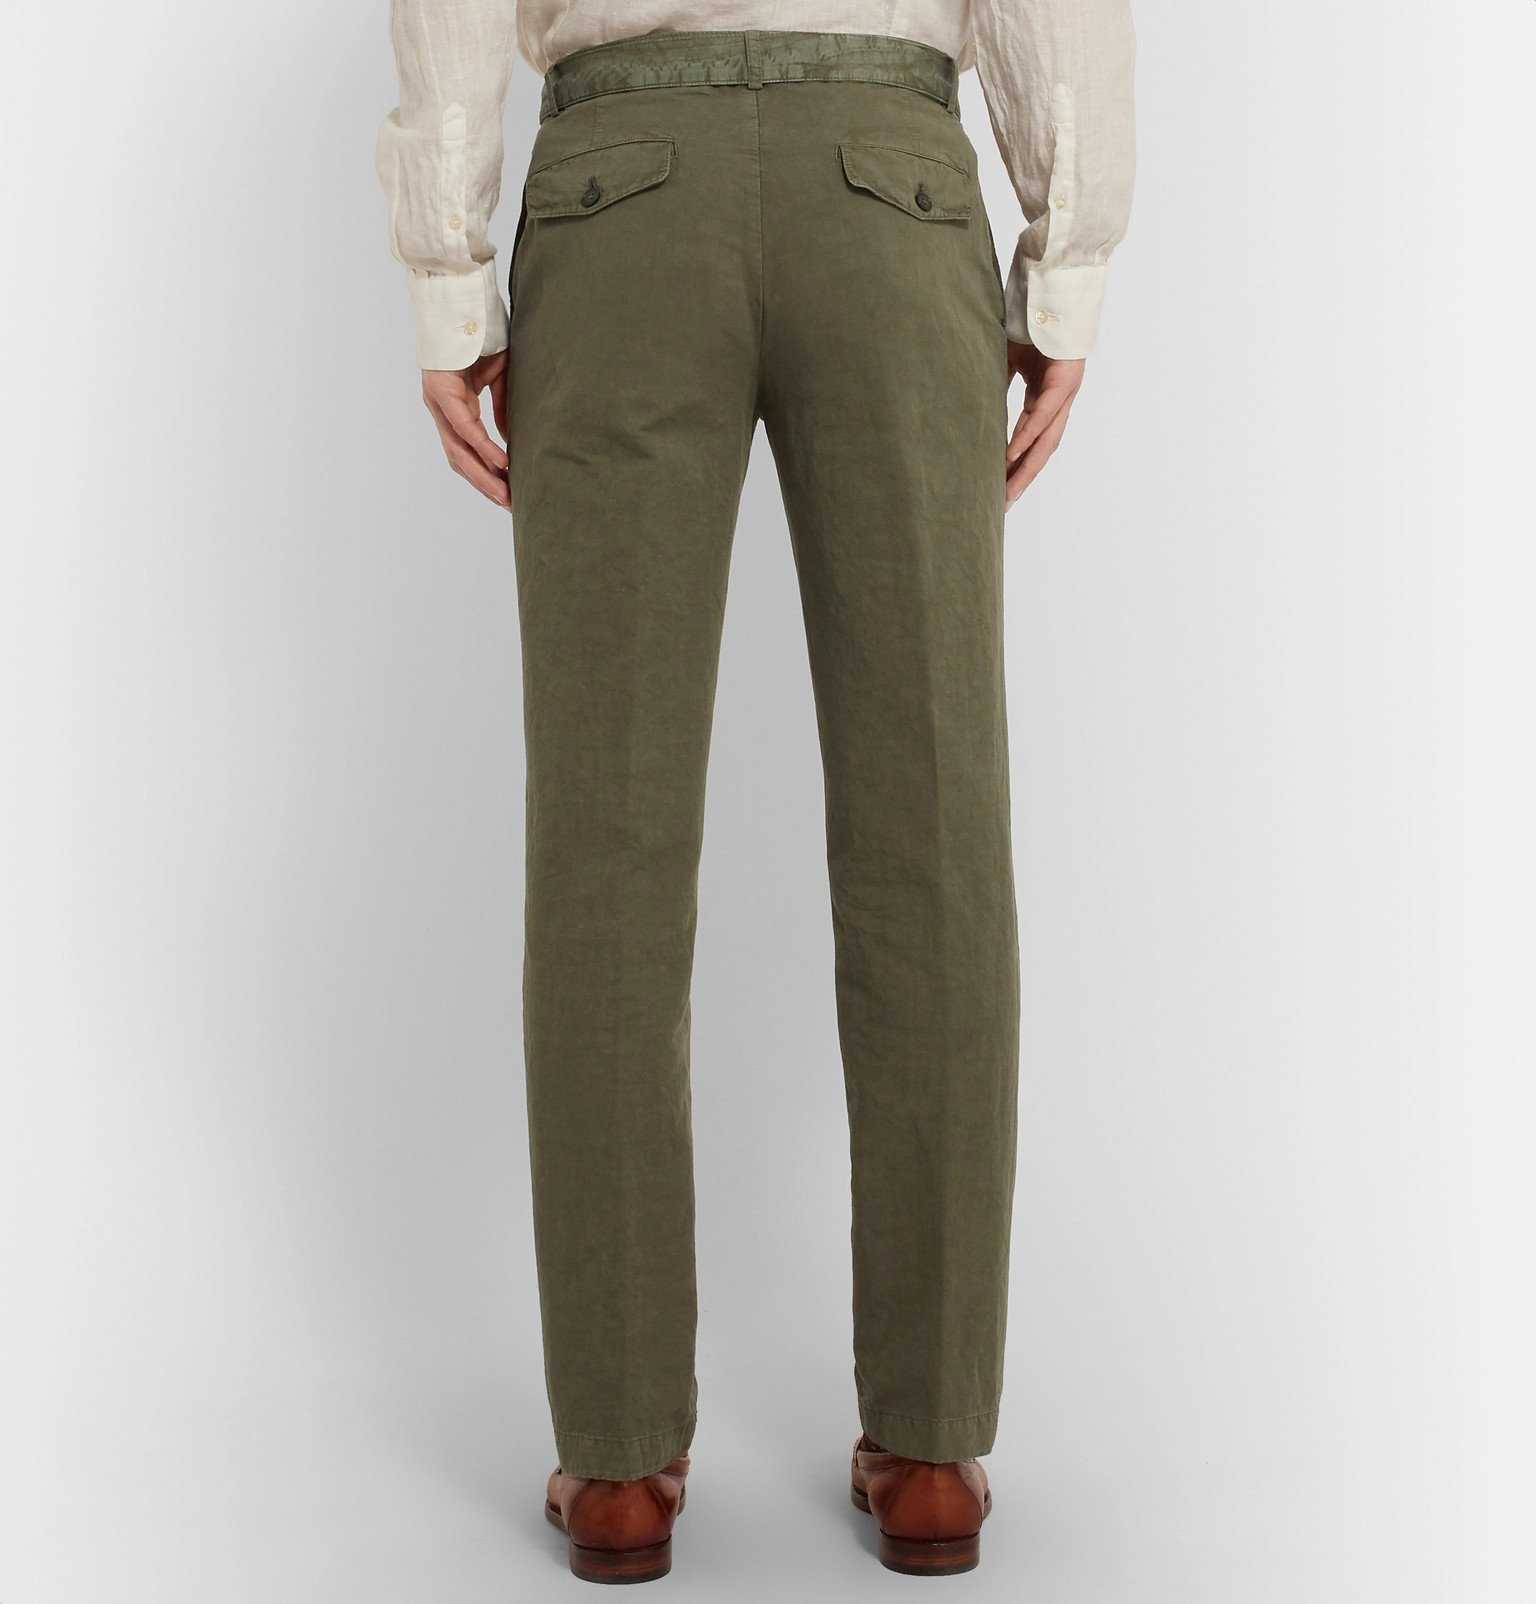 Officine Generale - Julian Slim-Fit Garment-Dyed Cotton and Linen-Blend Trousers - Green